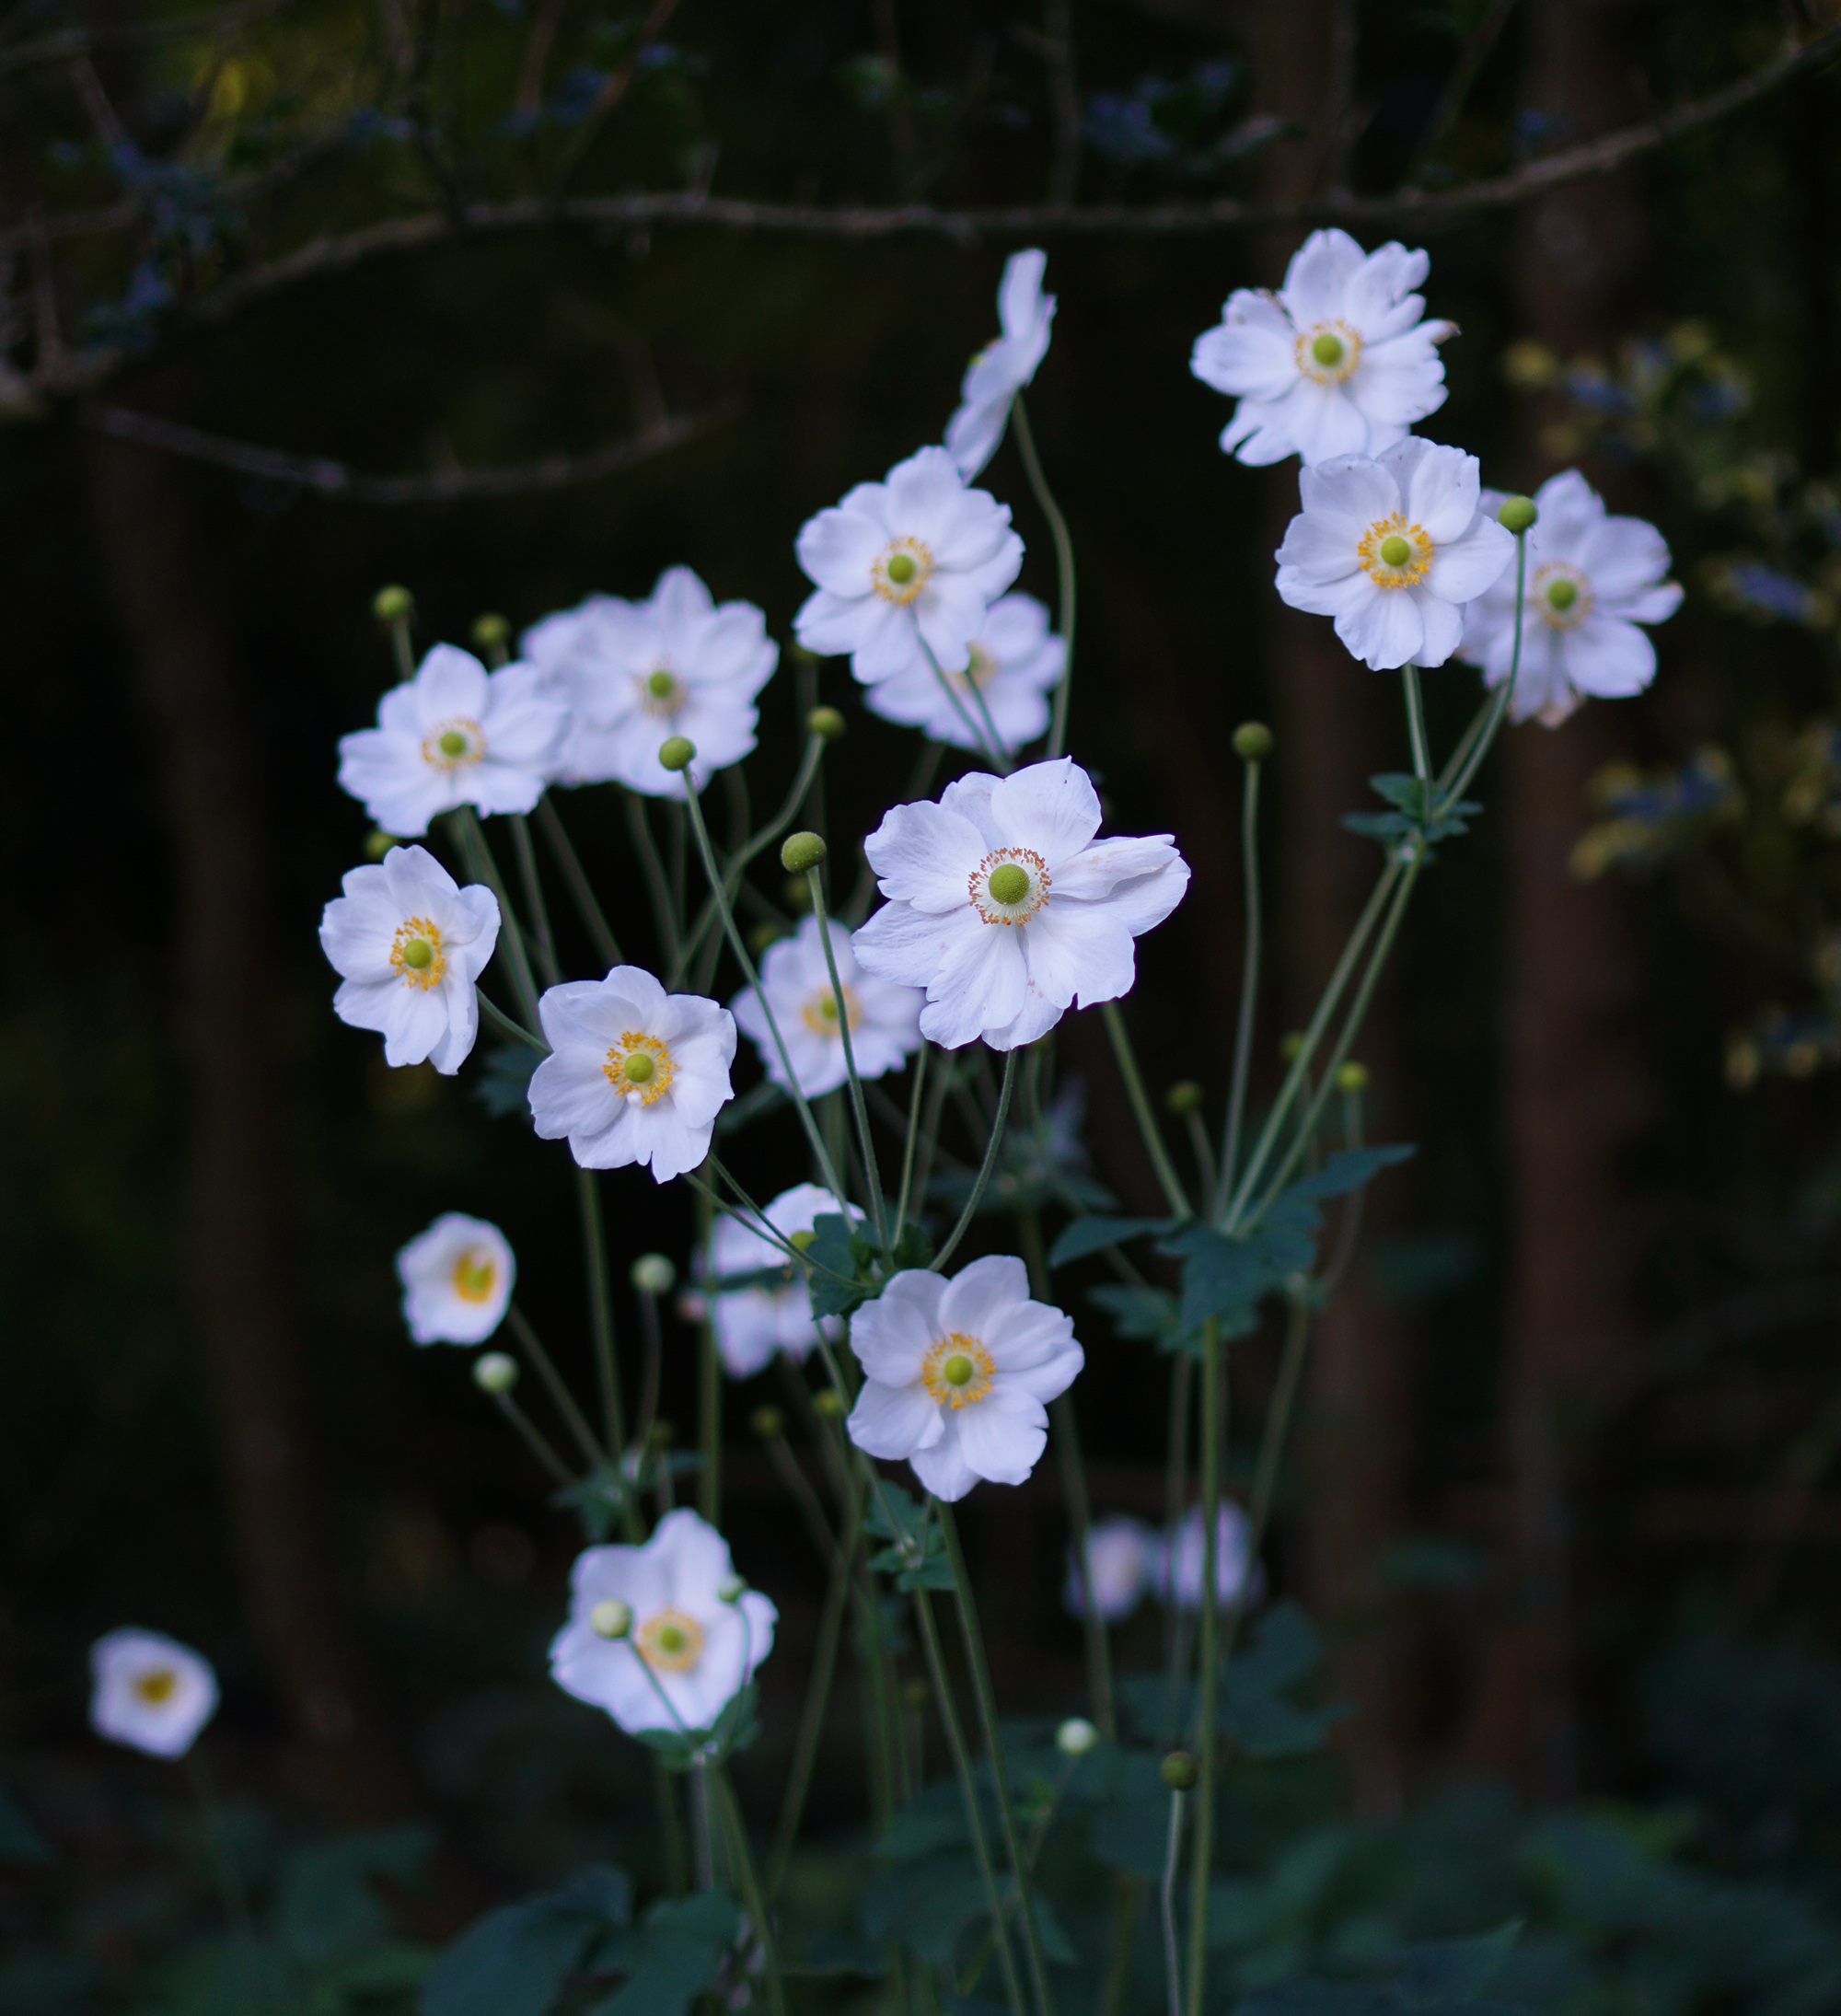 Japanese anemones, San Francisco Botanical Garden / Darker than Green